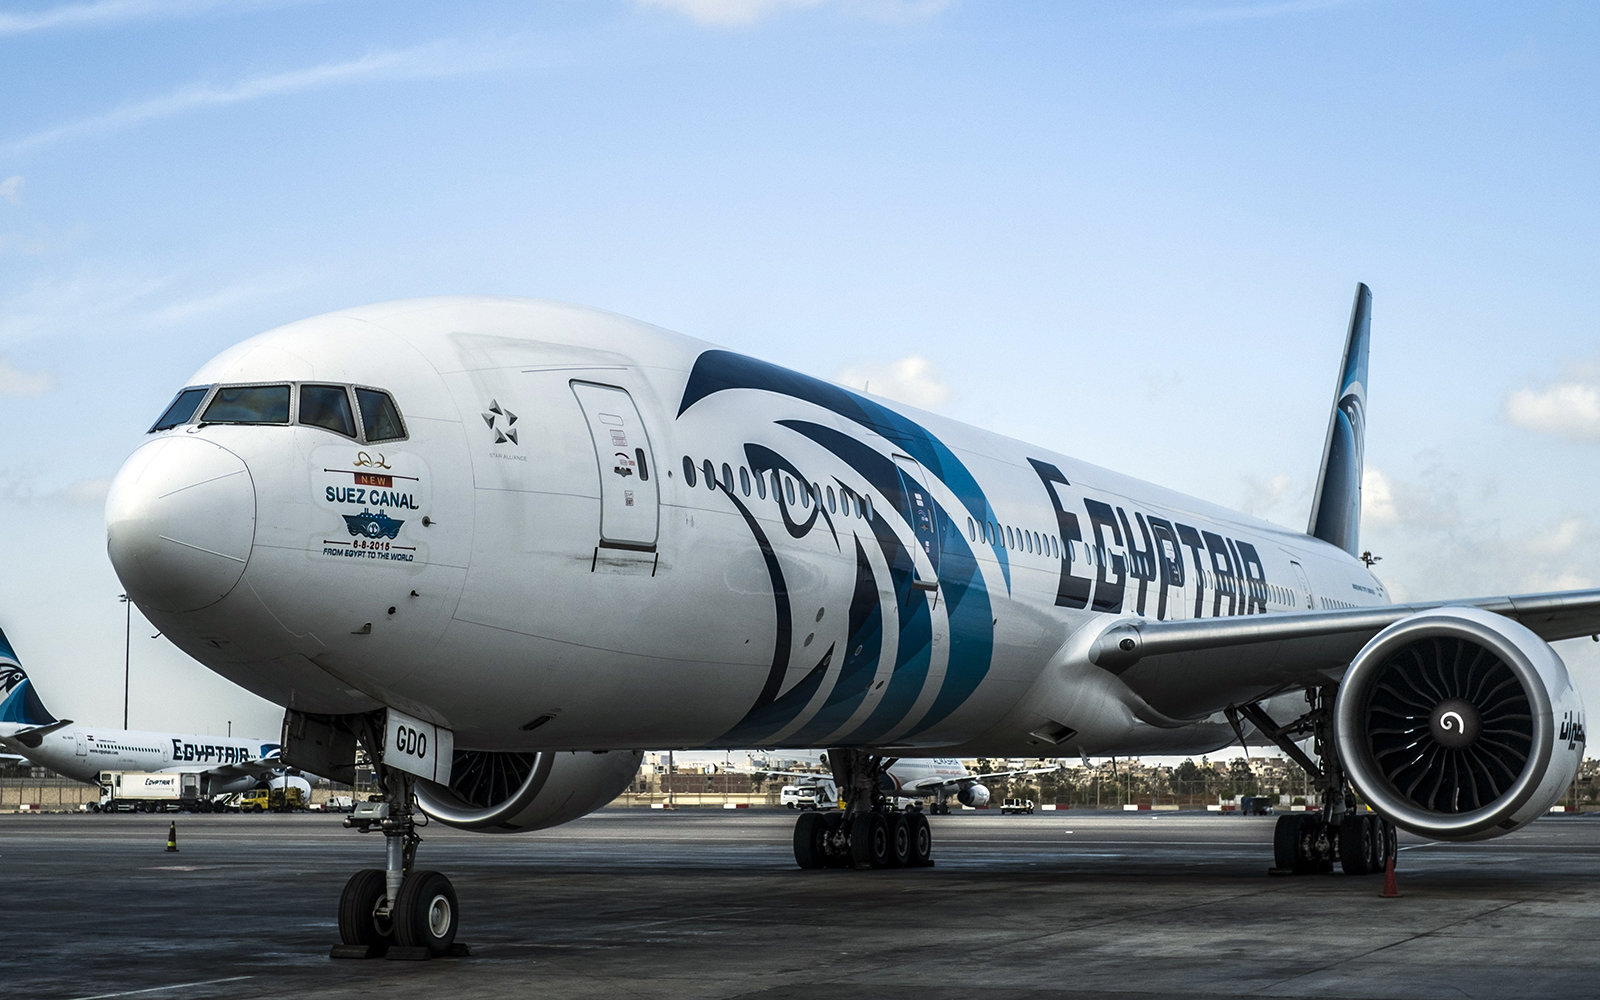 egyptair flight ms804 traveler news